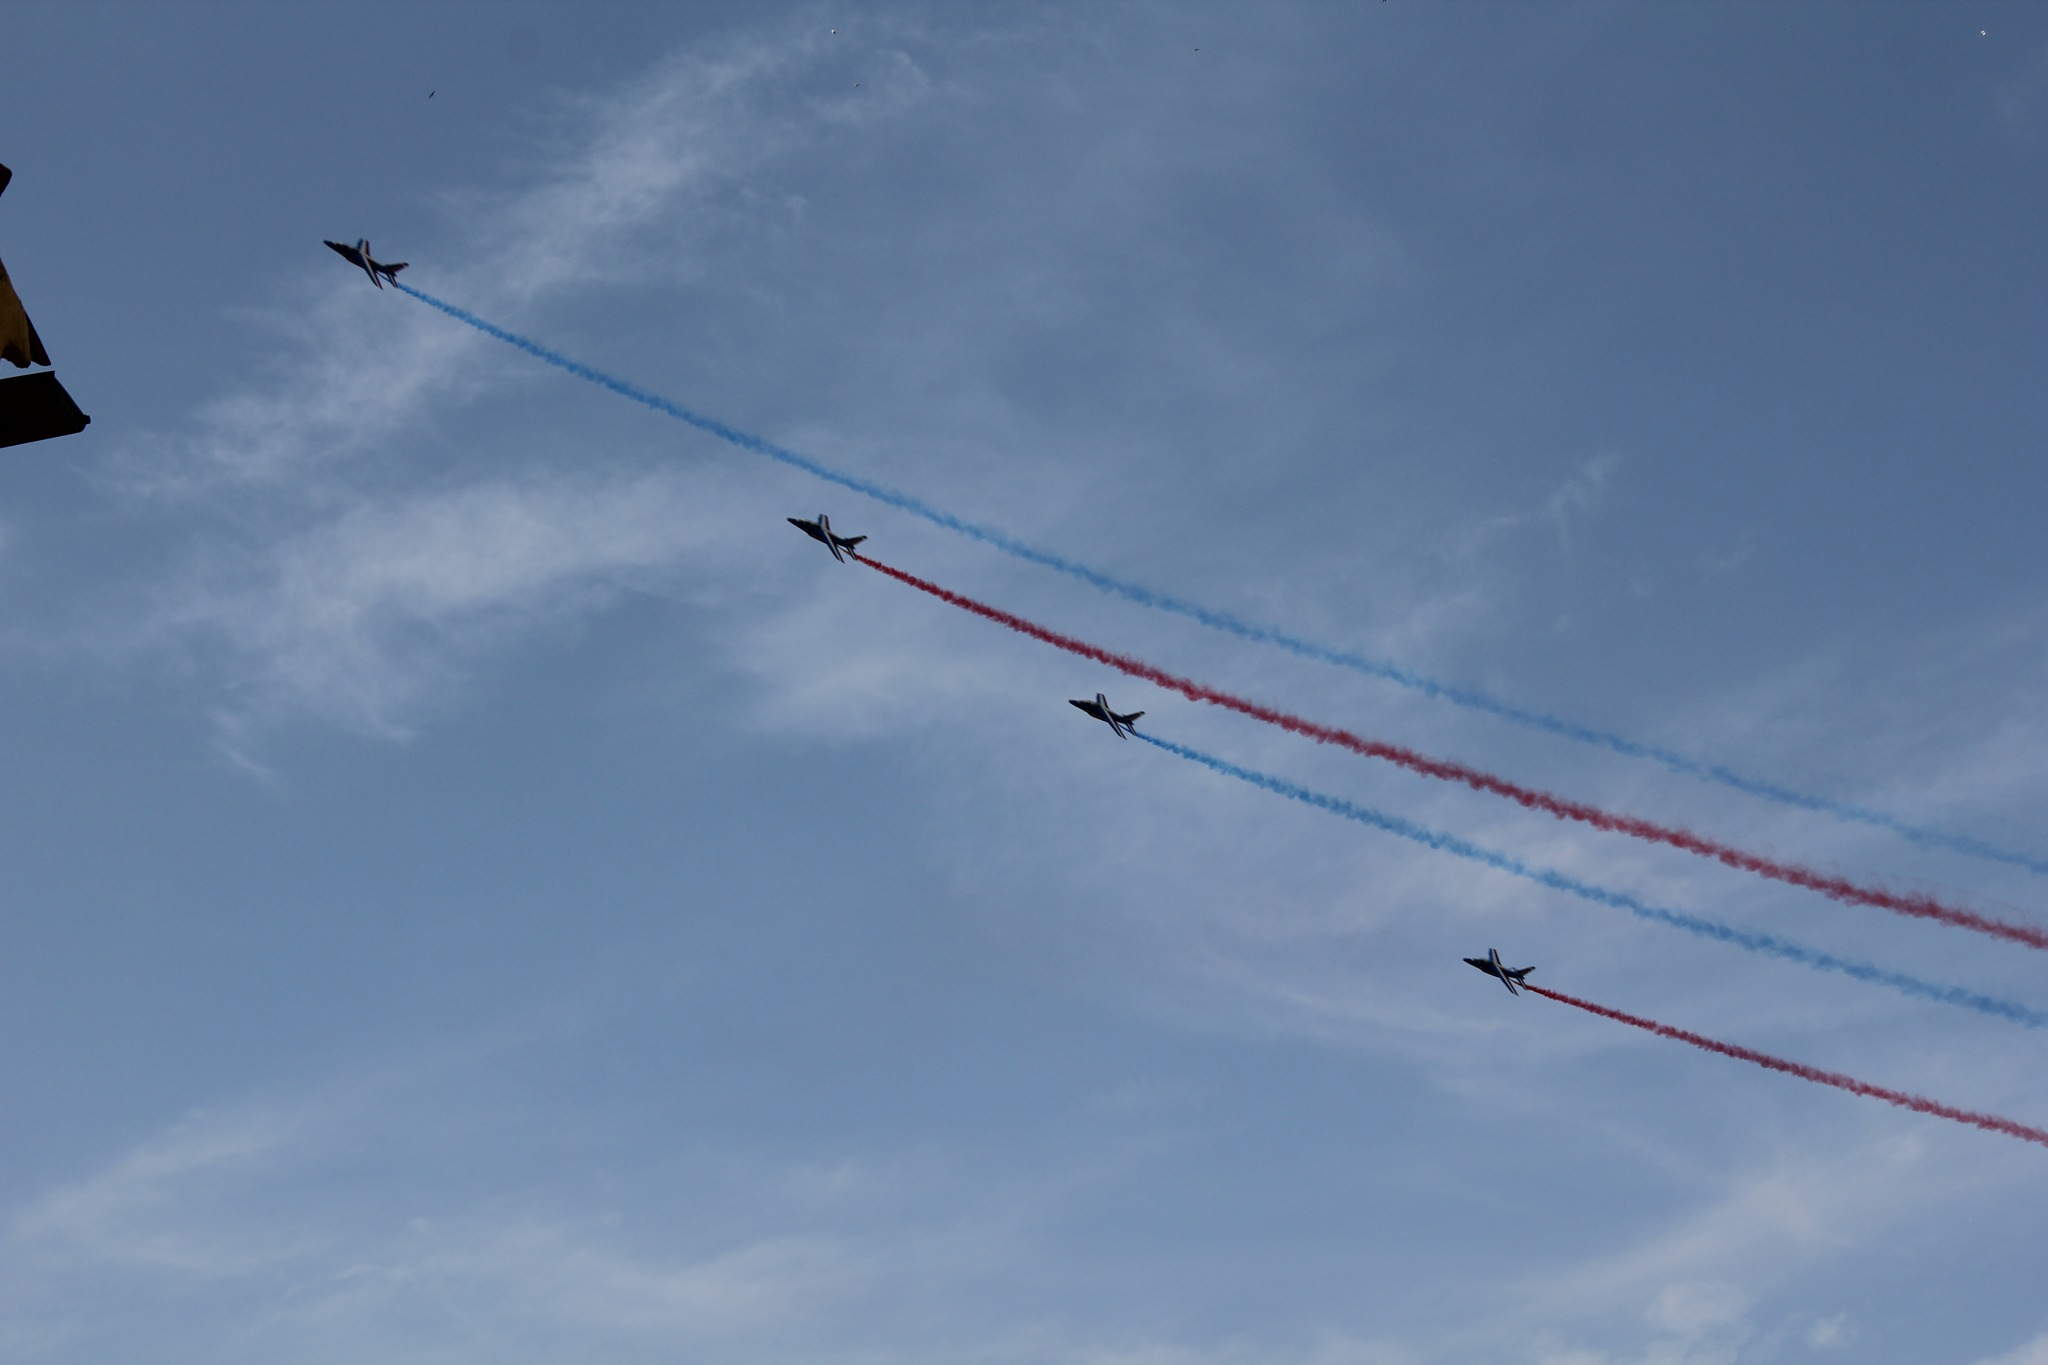 patrouille de france, salon de provence by colin.savidge